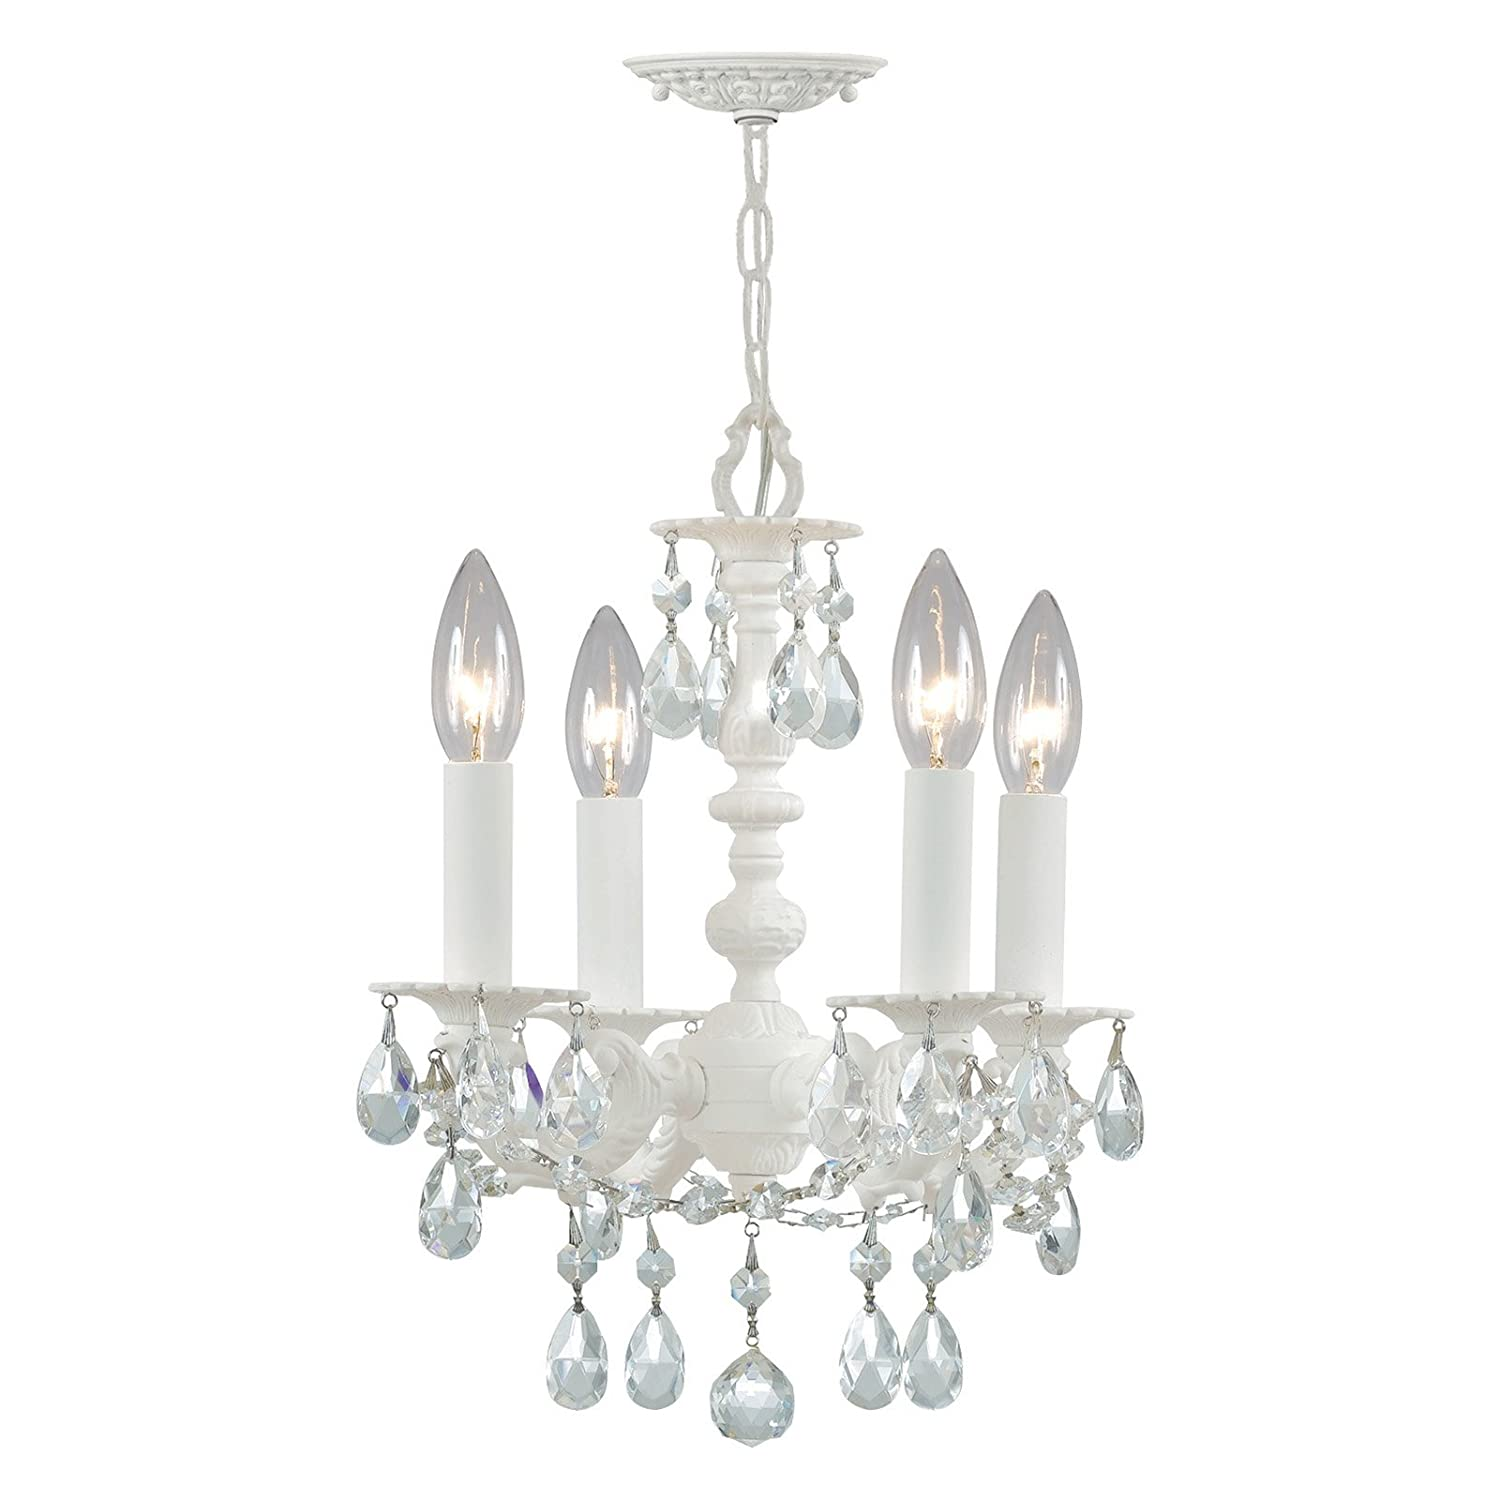 Crystorama 5514 WW CL MWP Crystal Accents Four Light Mini